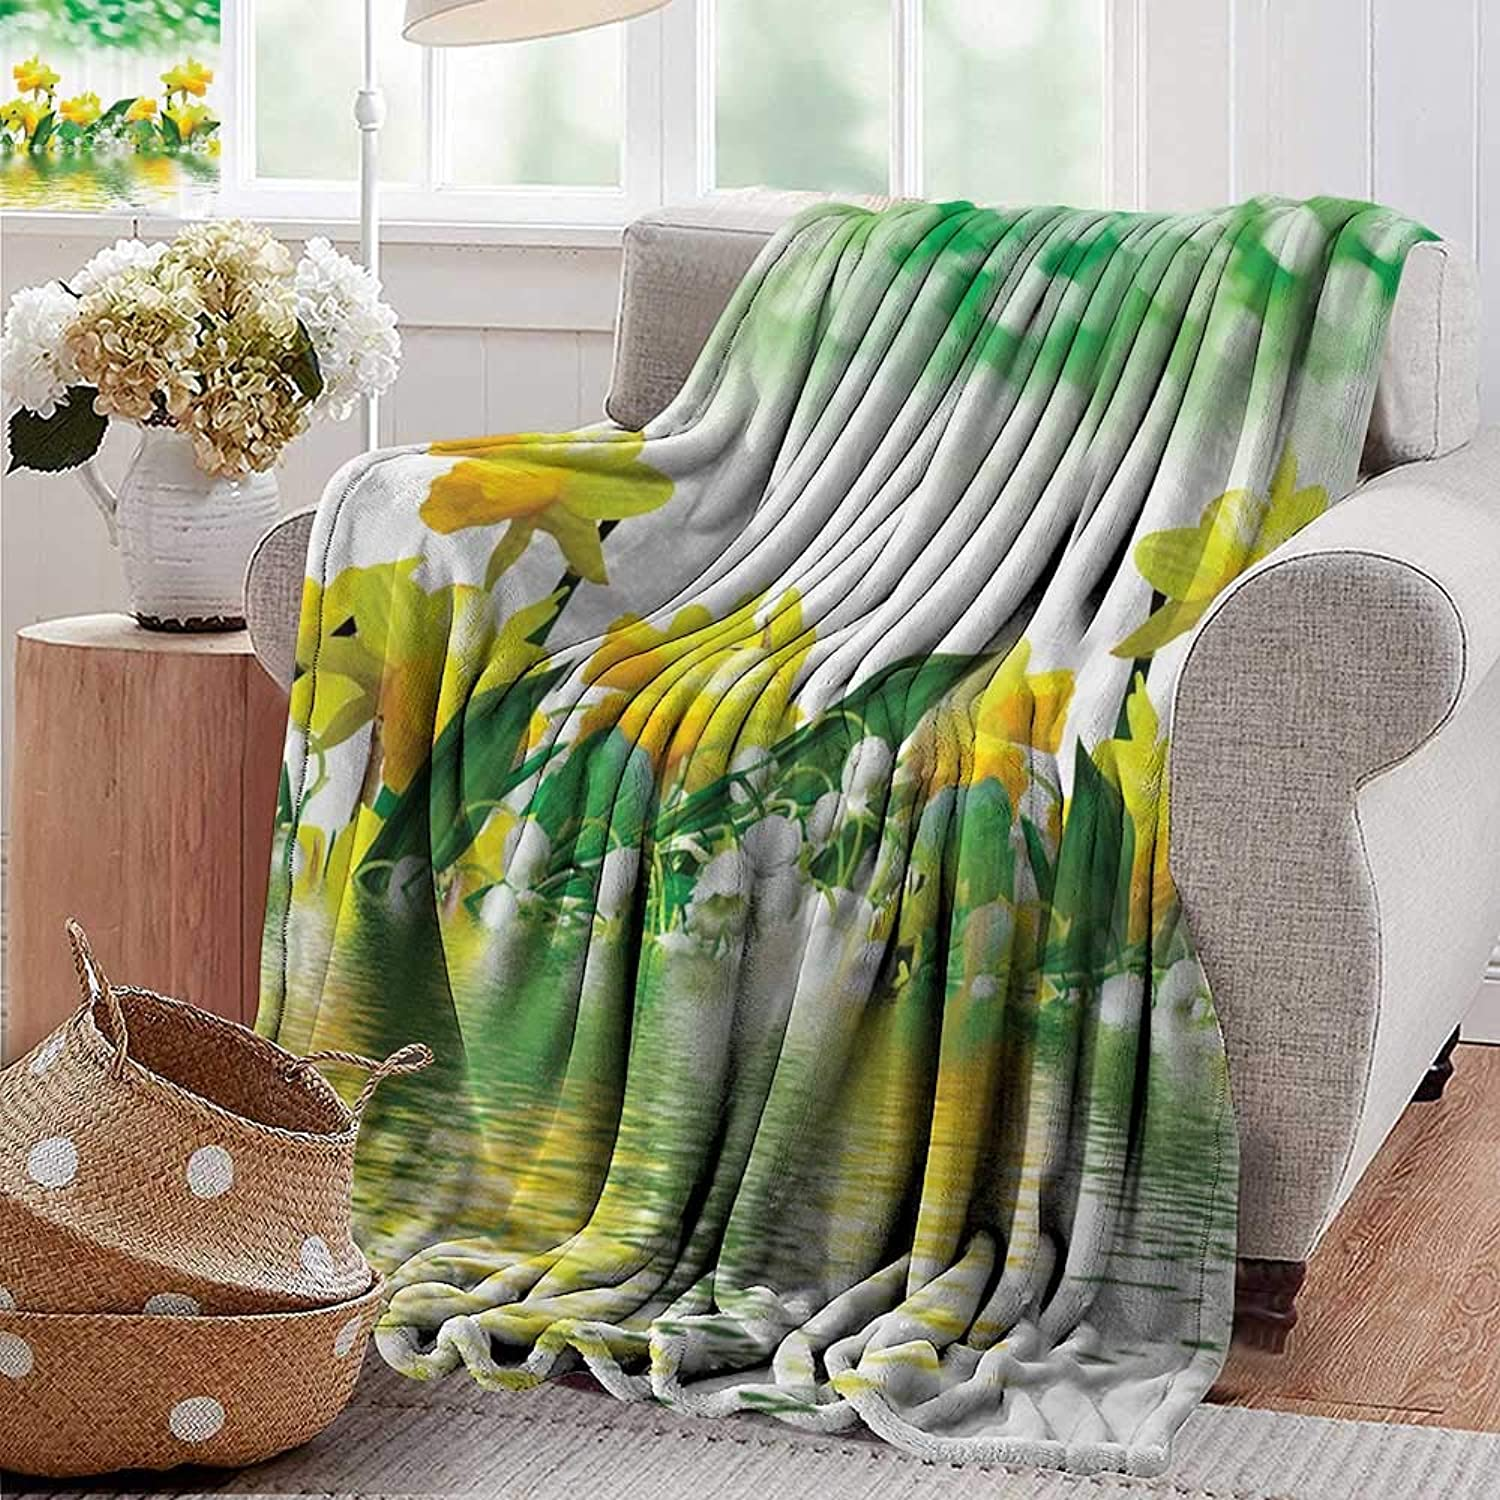 Weighted blanket for kids Gifts Daffodil Green Garden Fabric for Floral Decor in Yellow White and Green Reflection on Water Closeup Picture Flower Pattern Weighted Blanket for Adults Kids Better Deepe